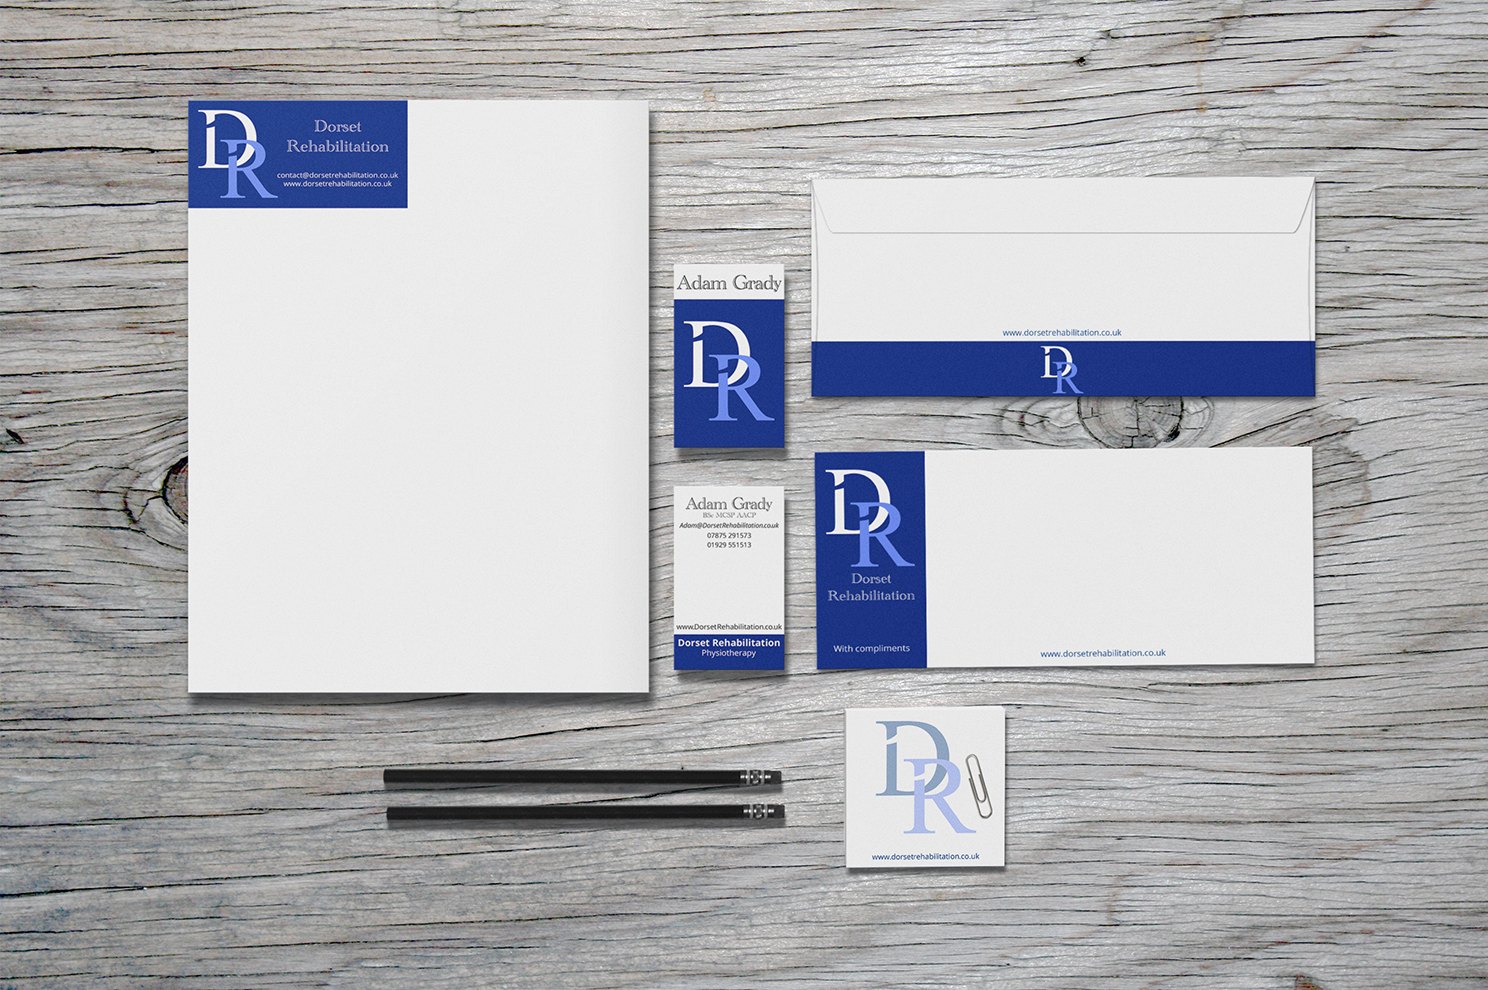 Branding Design Mockup for Dorset Rehabilitation